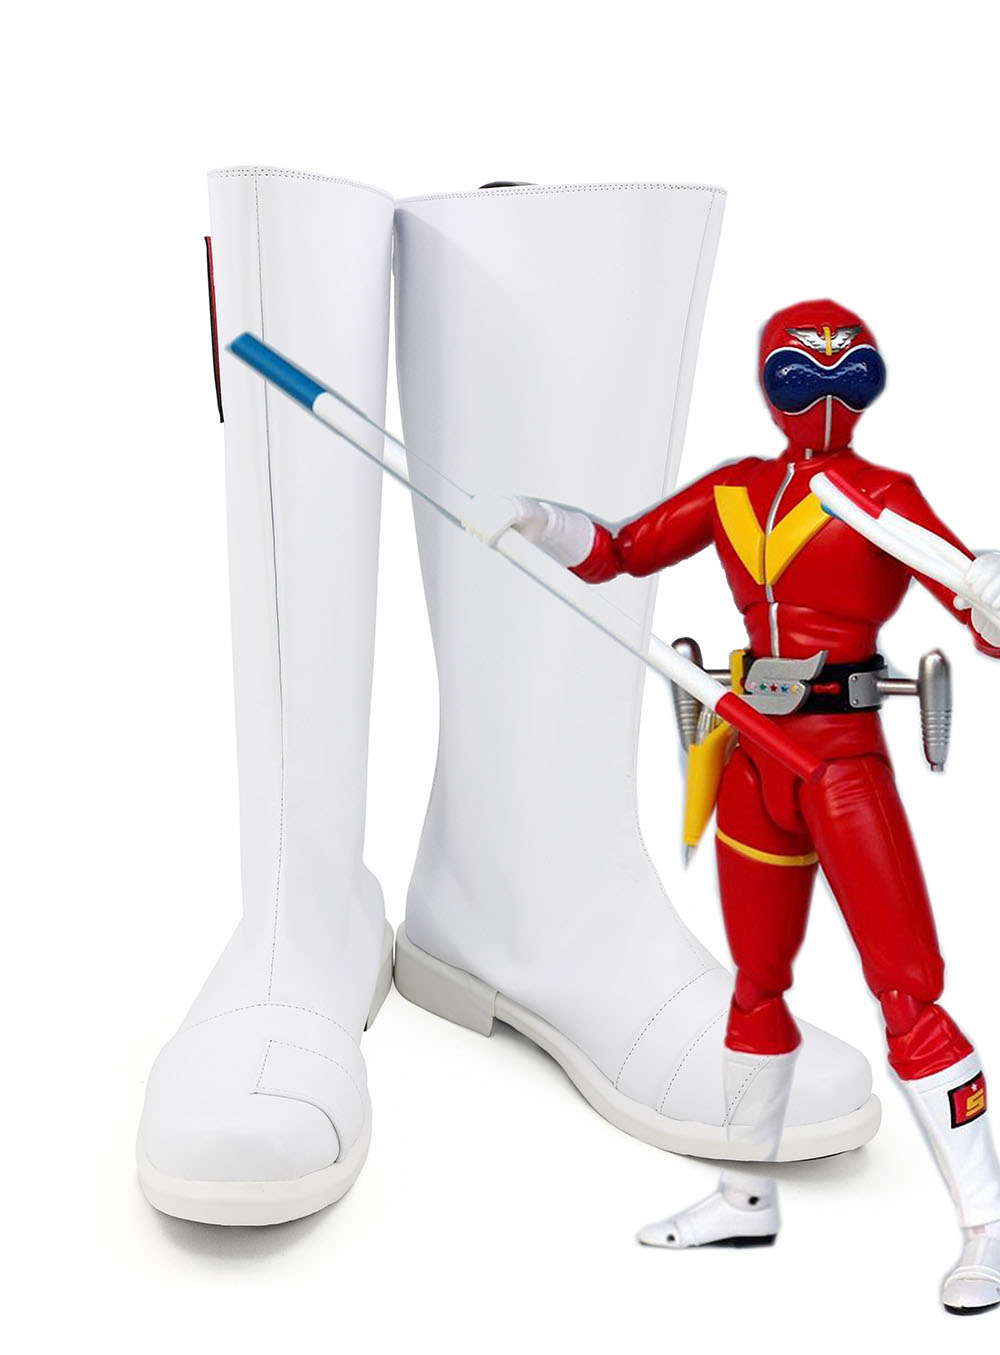 White Power Ranger Power Rangers Superhero black red blue cosplay Boots shoes